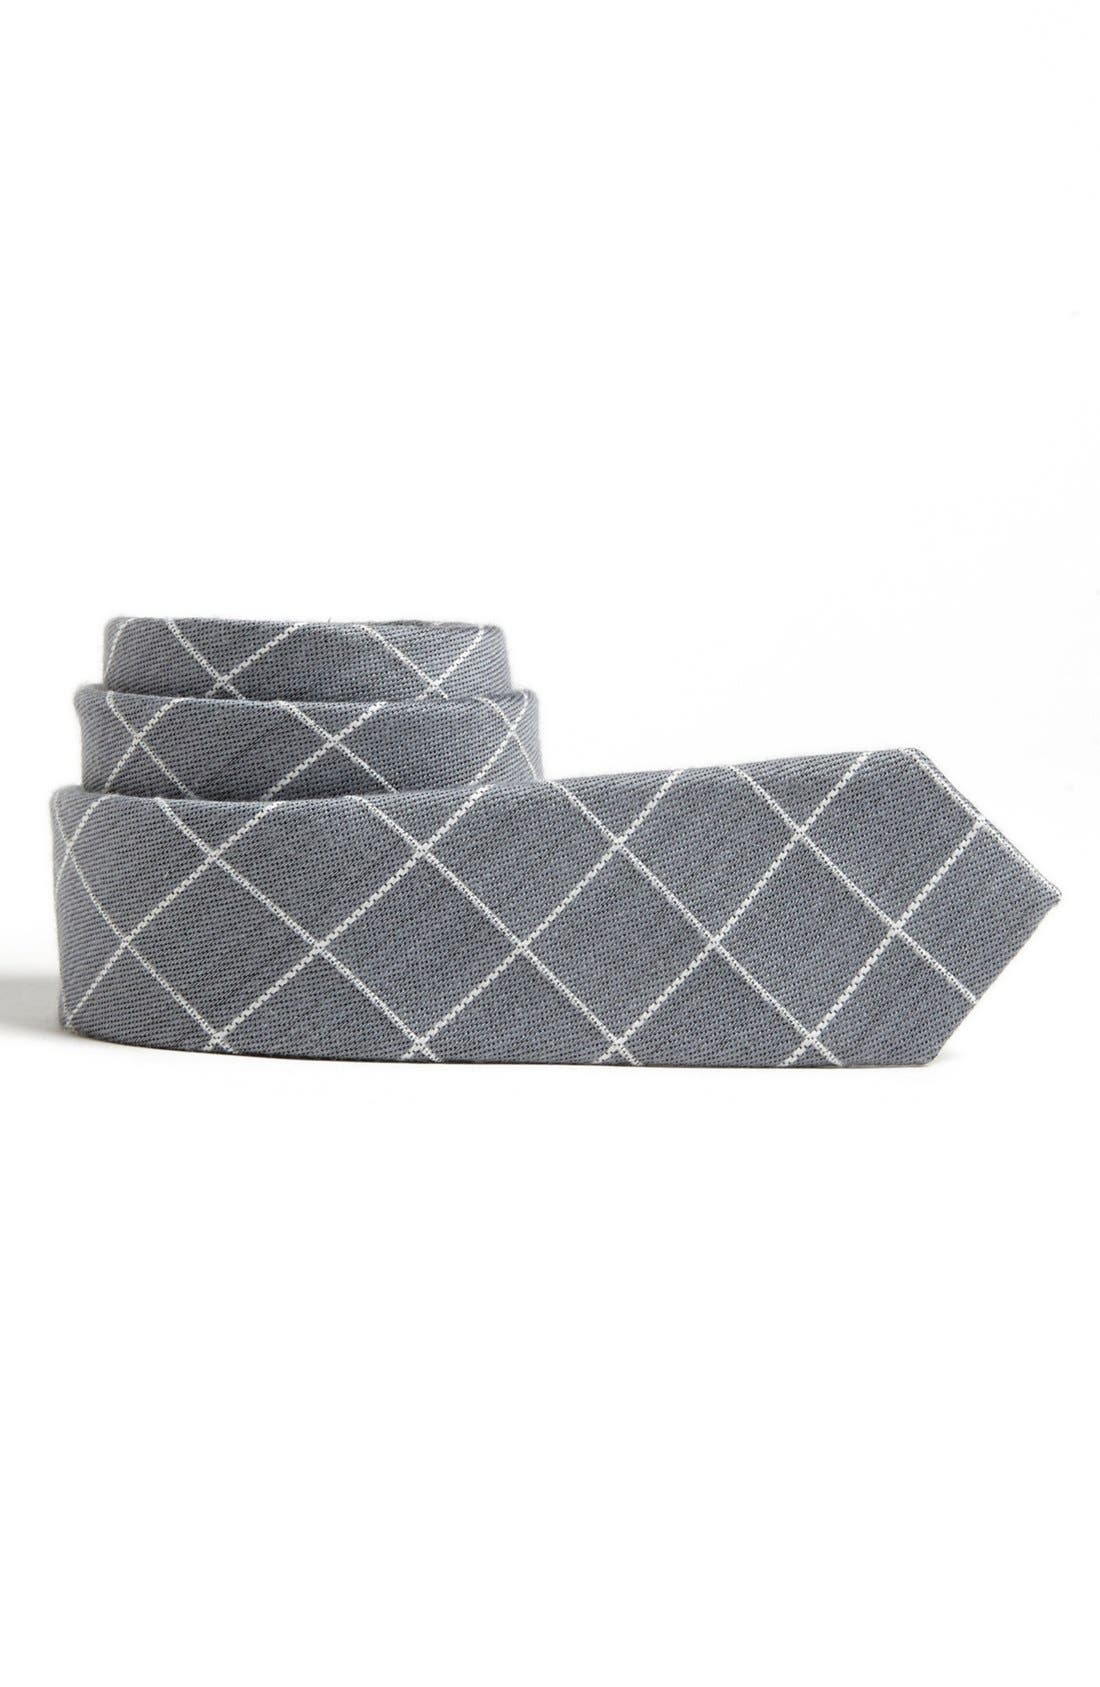 Alternate Image 1 Selected - C2 by Calibrate Woven Tie (Big Boys)